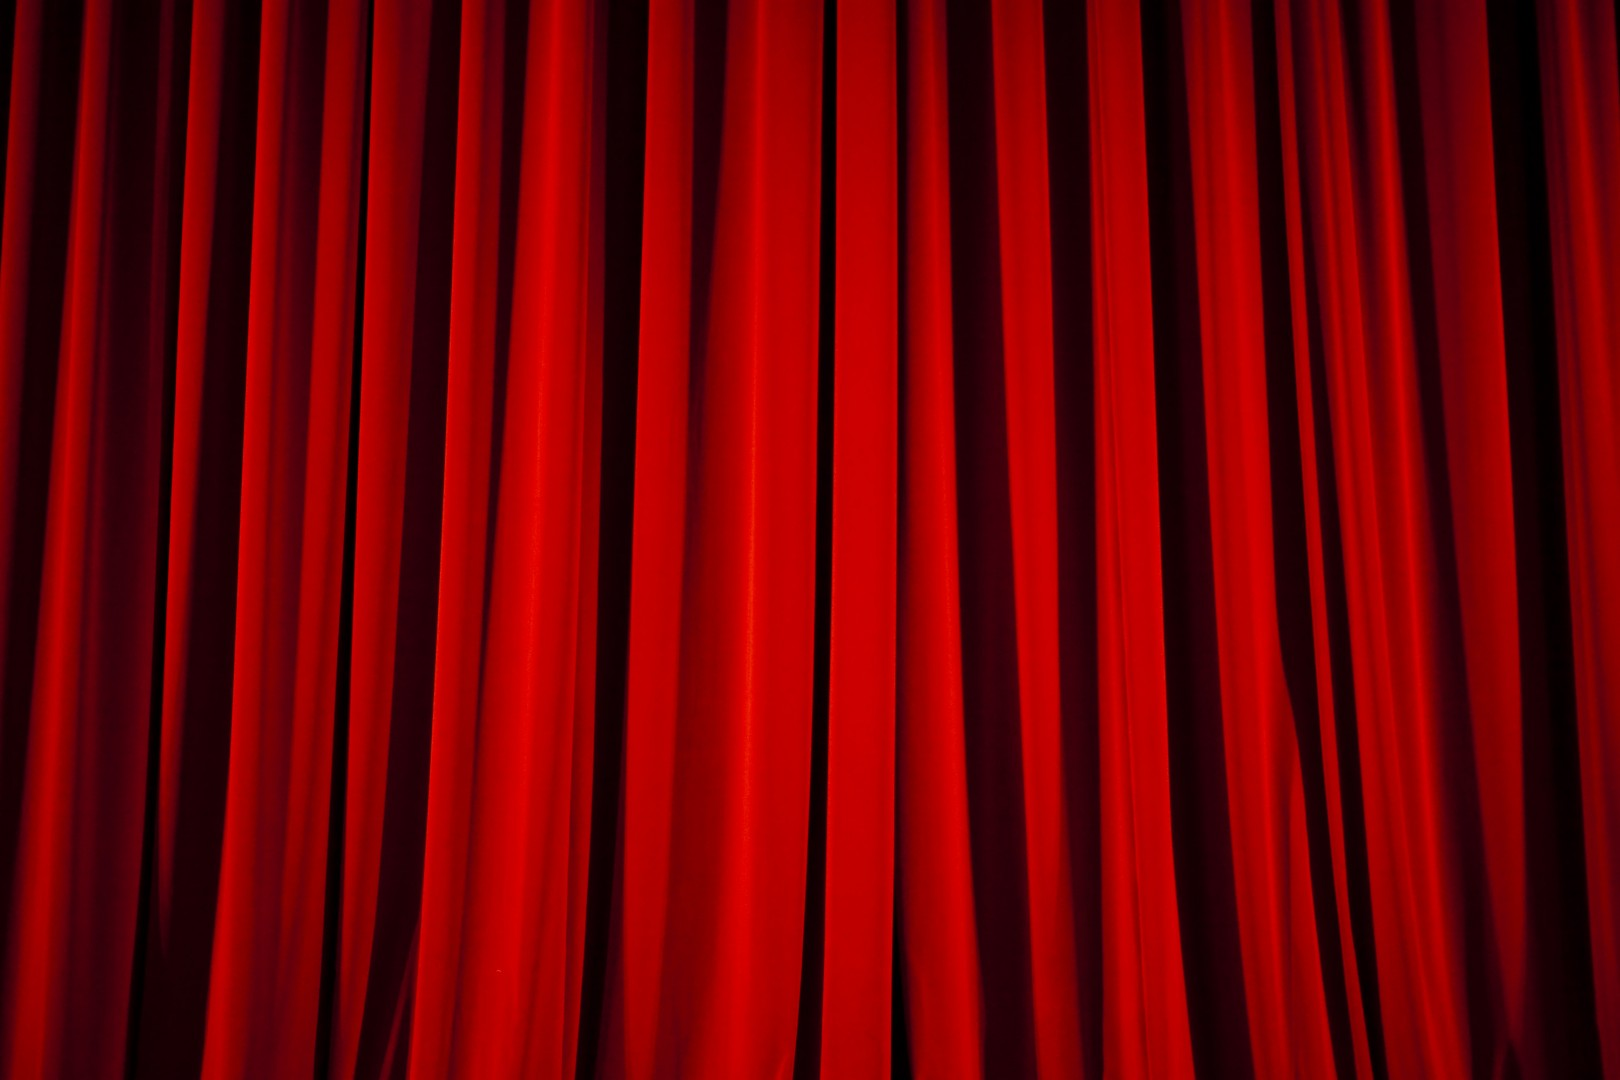 Red Curtain Spotlight Background